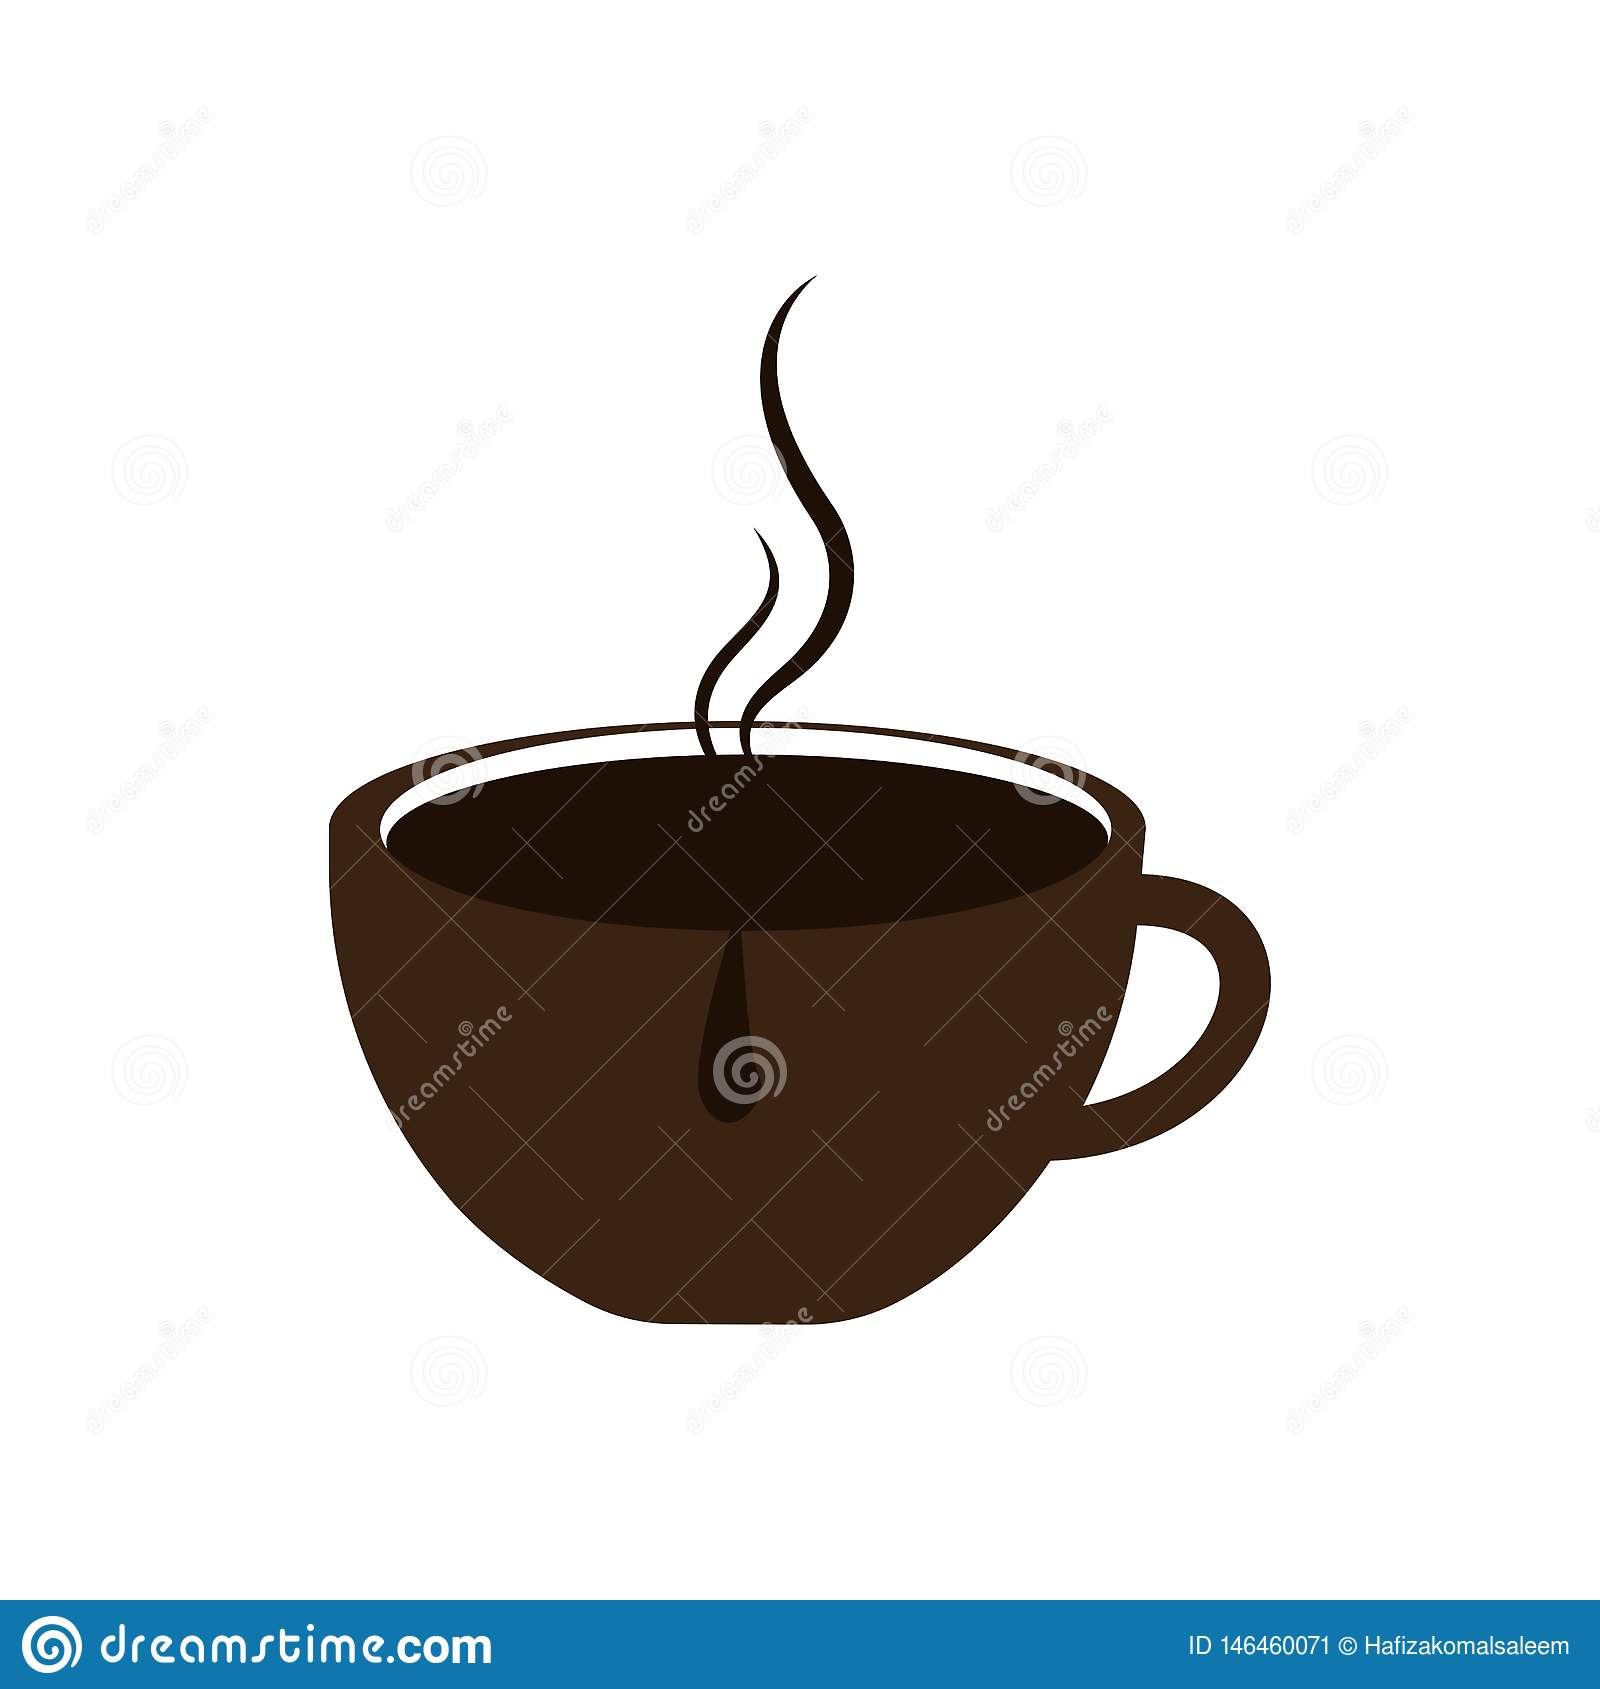 Creative Coffee Cup Logo Design Illustration Stock Vector ...